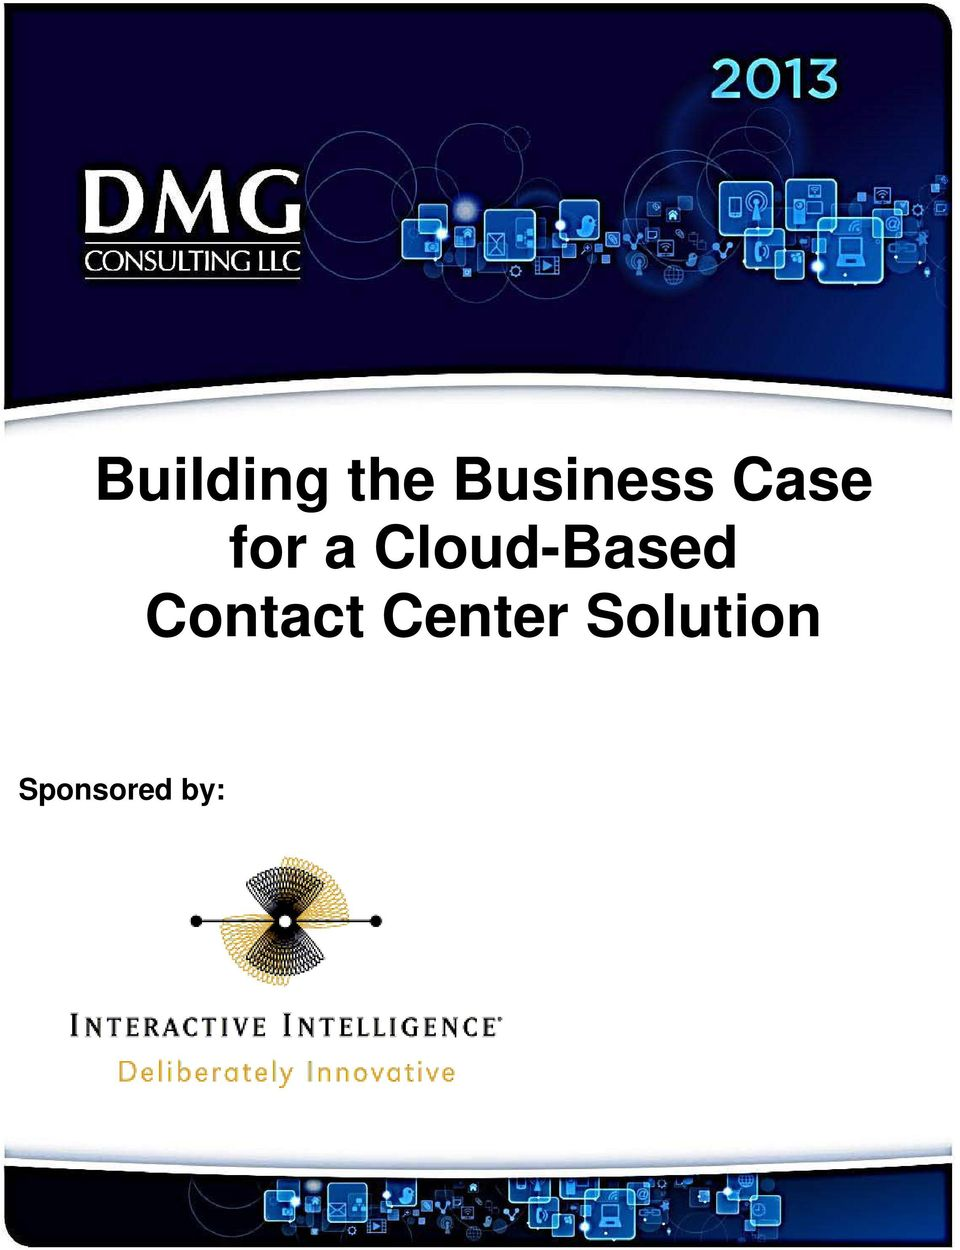 Center Solution Sponsored